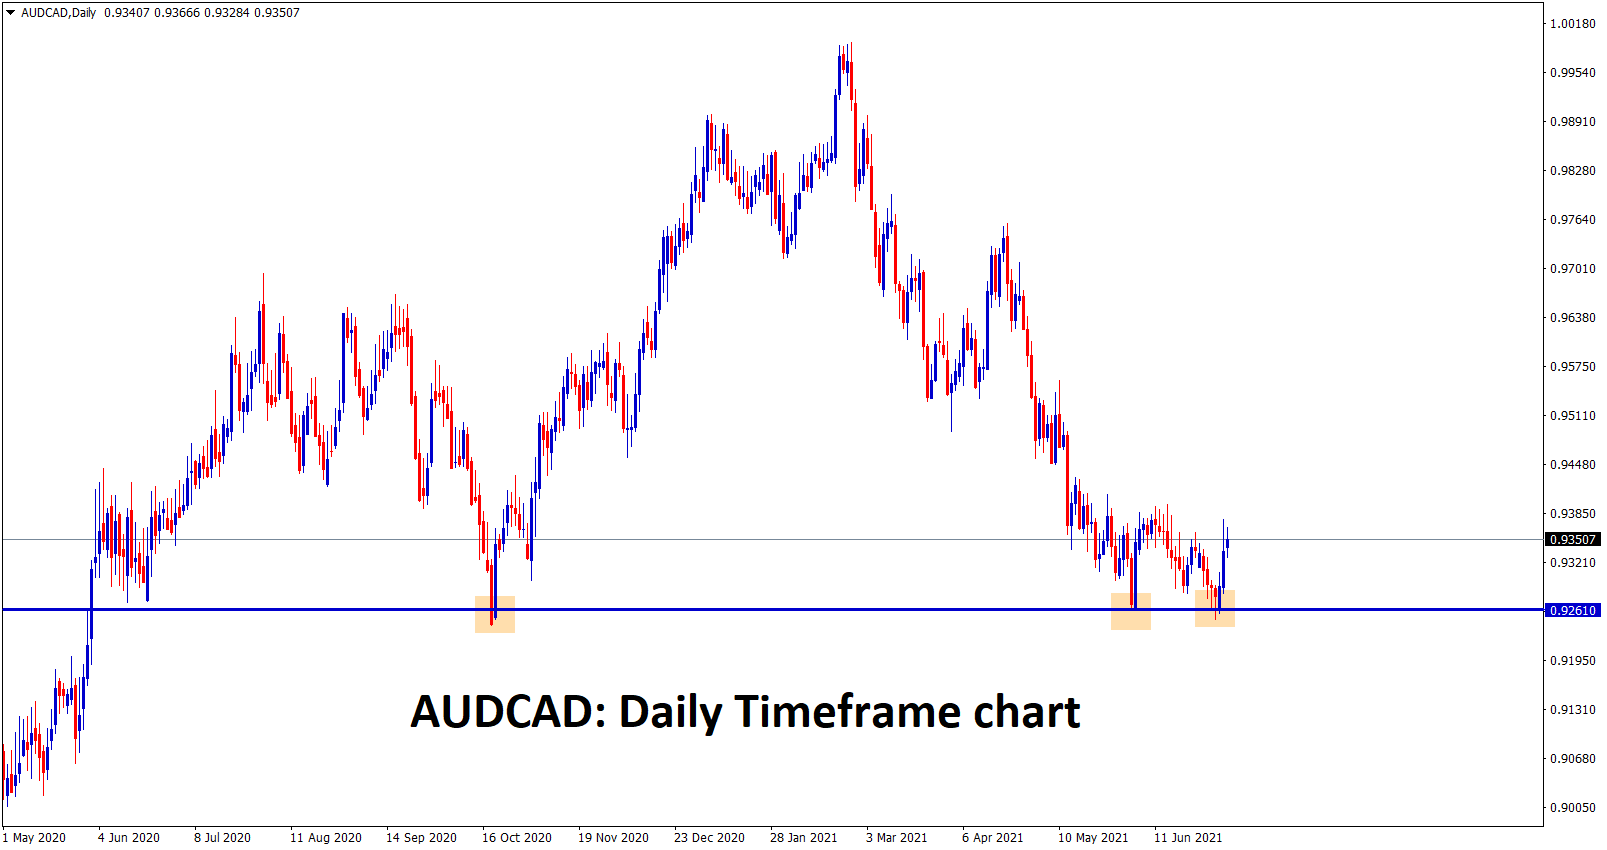 AUDCAD is bouncing up strongly from the important support area